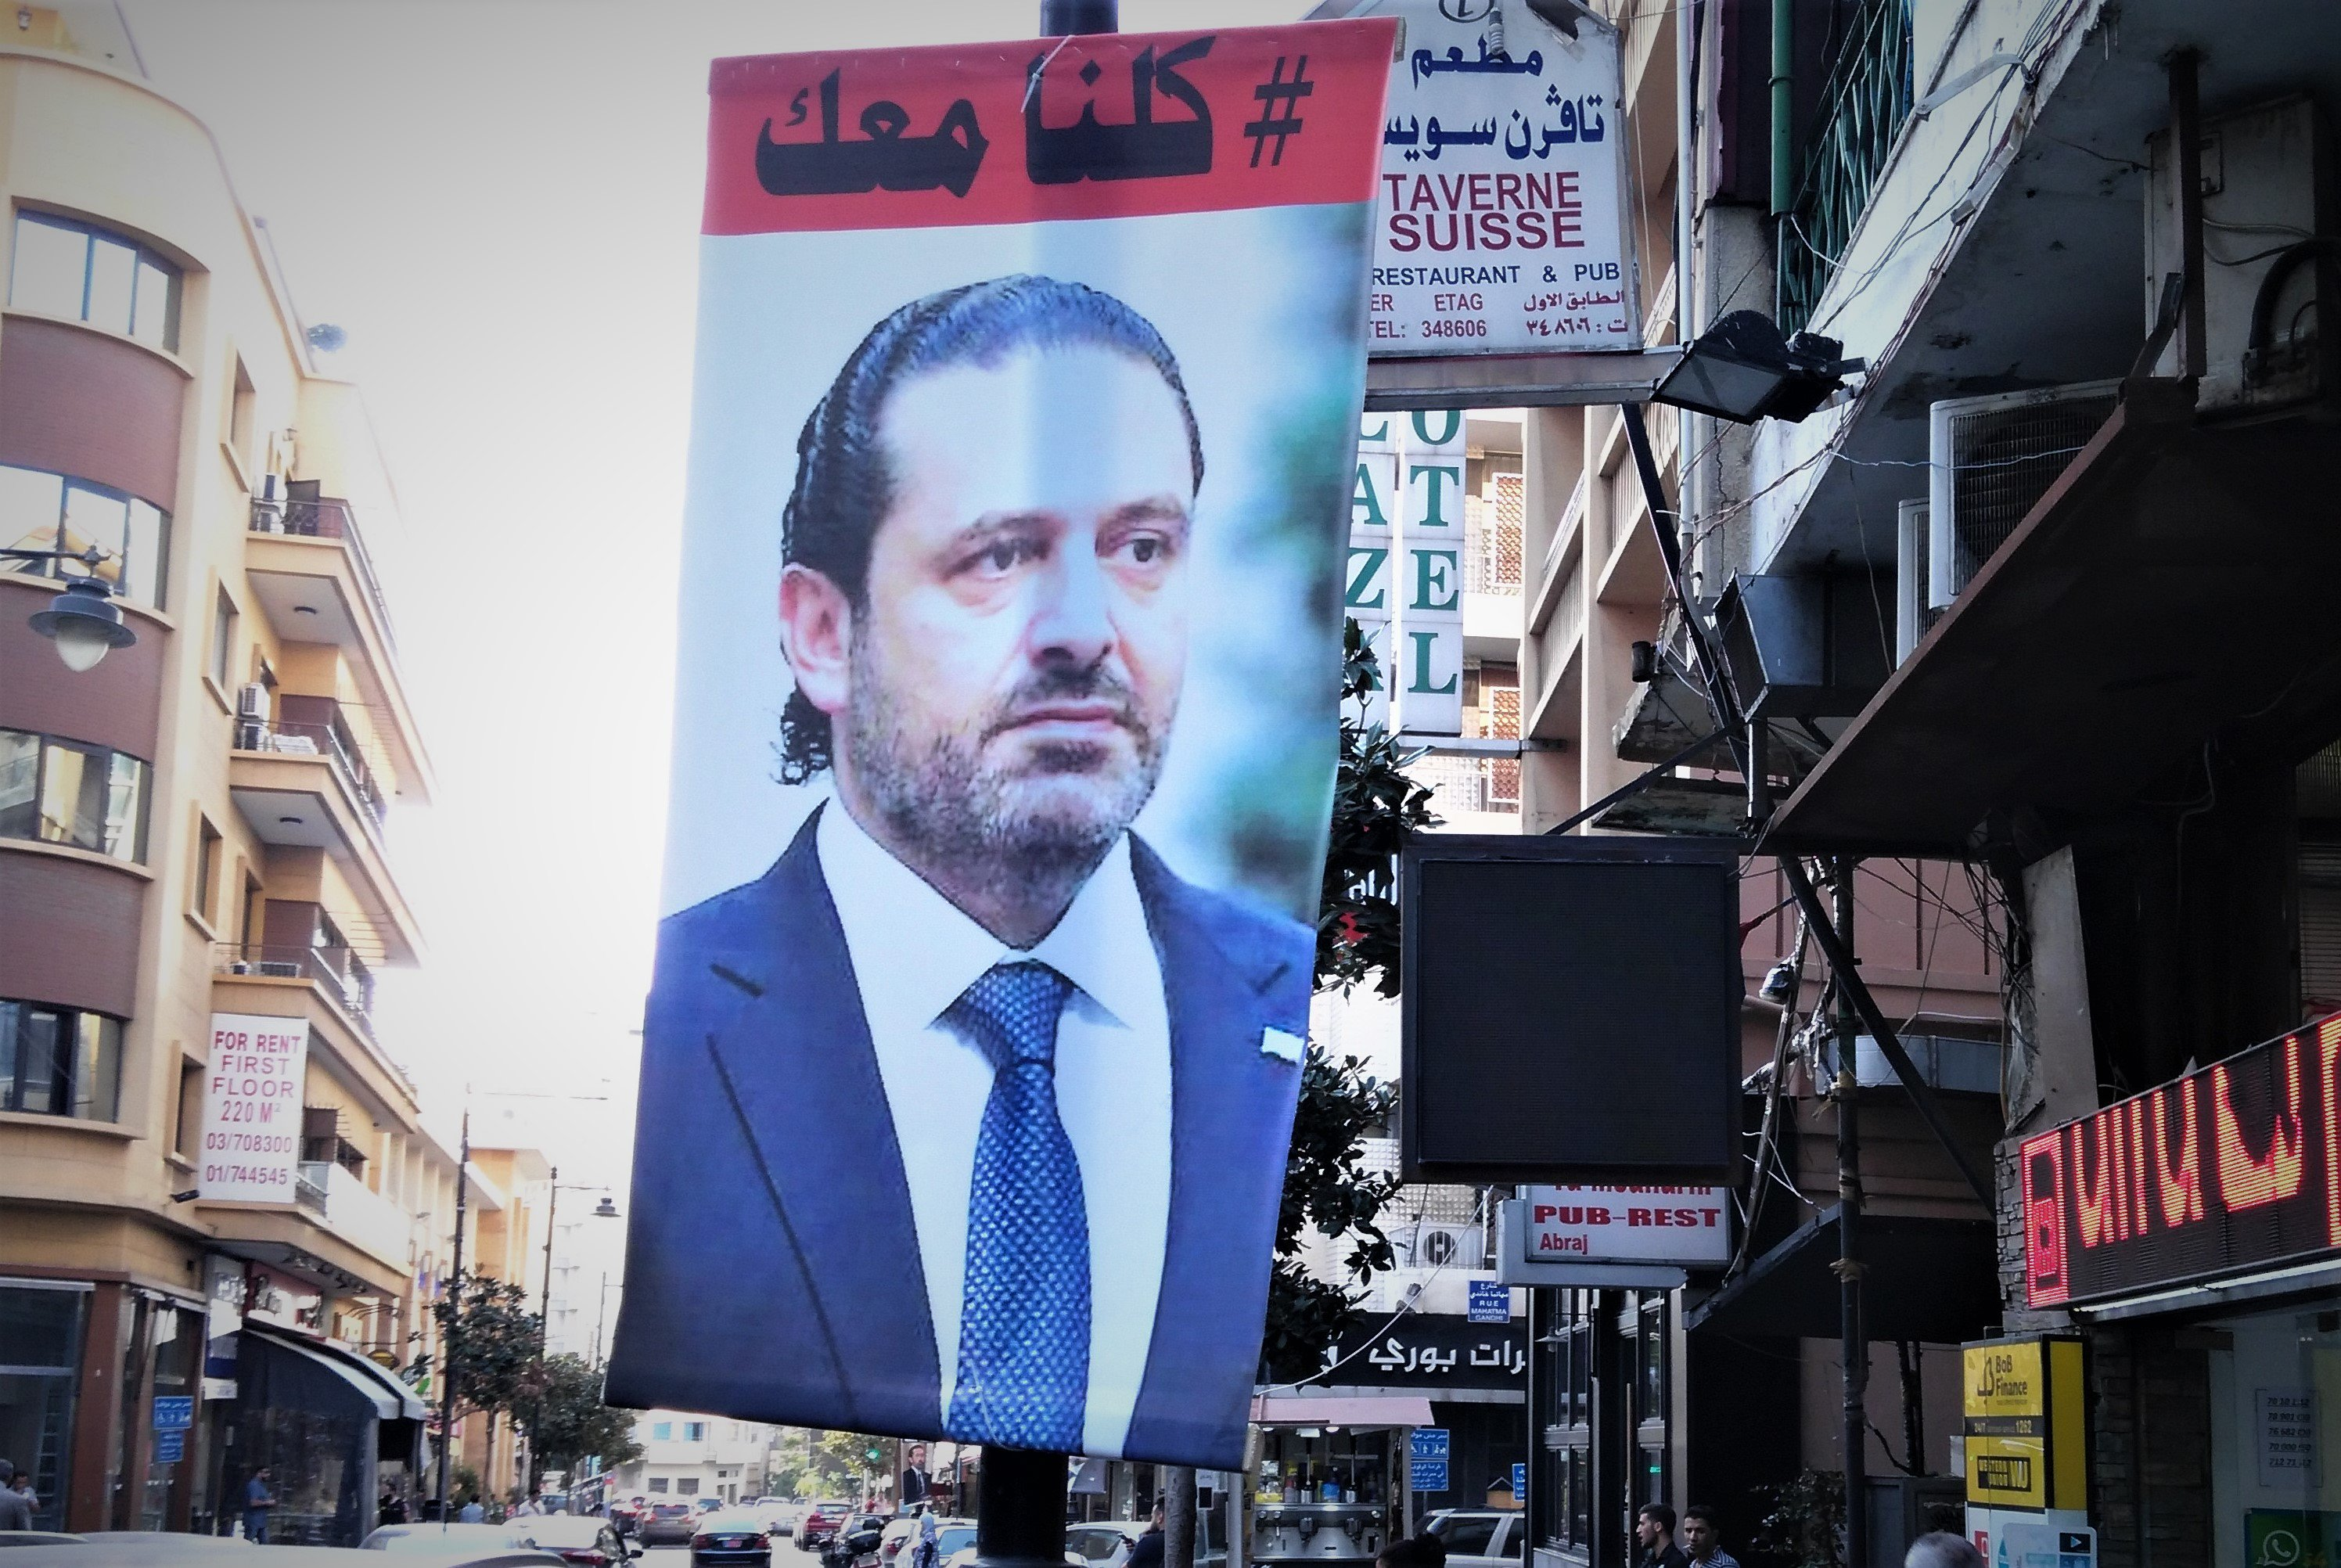 Hariri-sign-with-hashtag-1.jpg